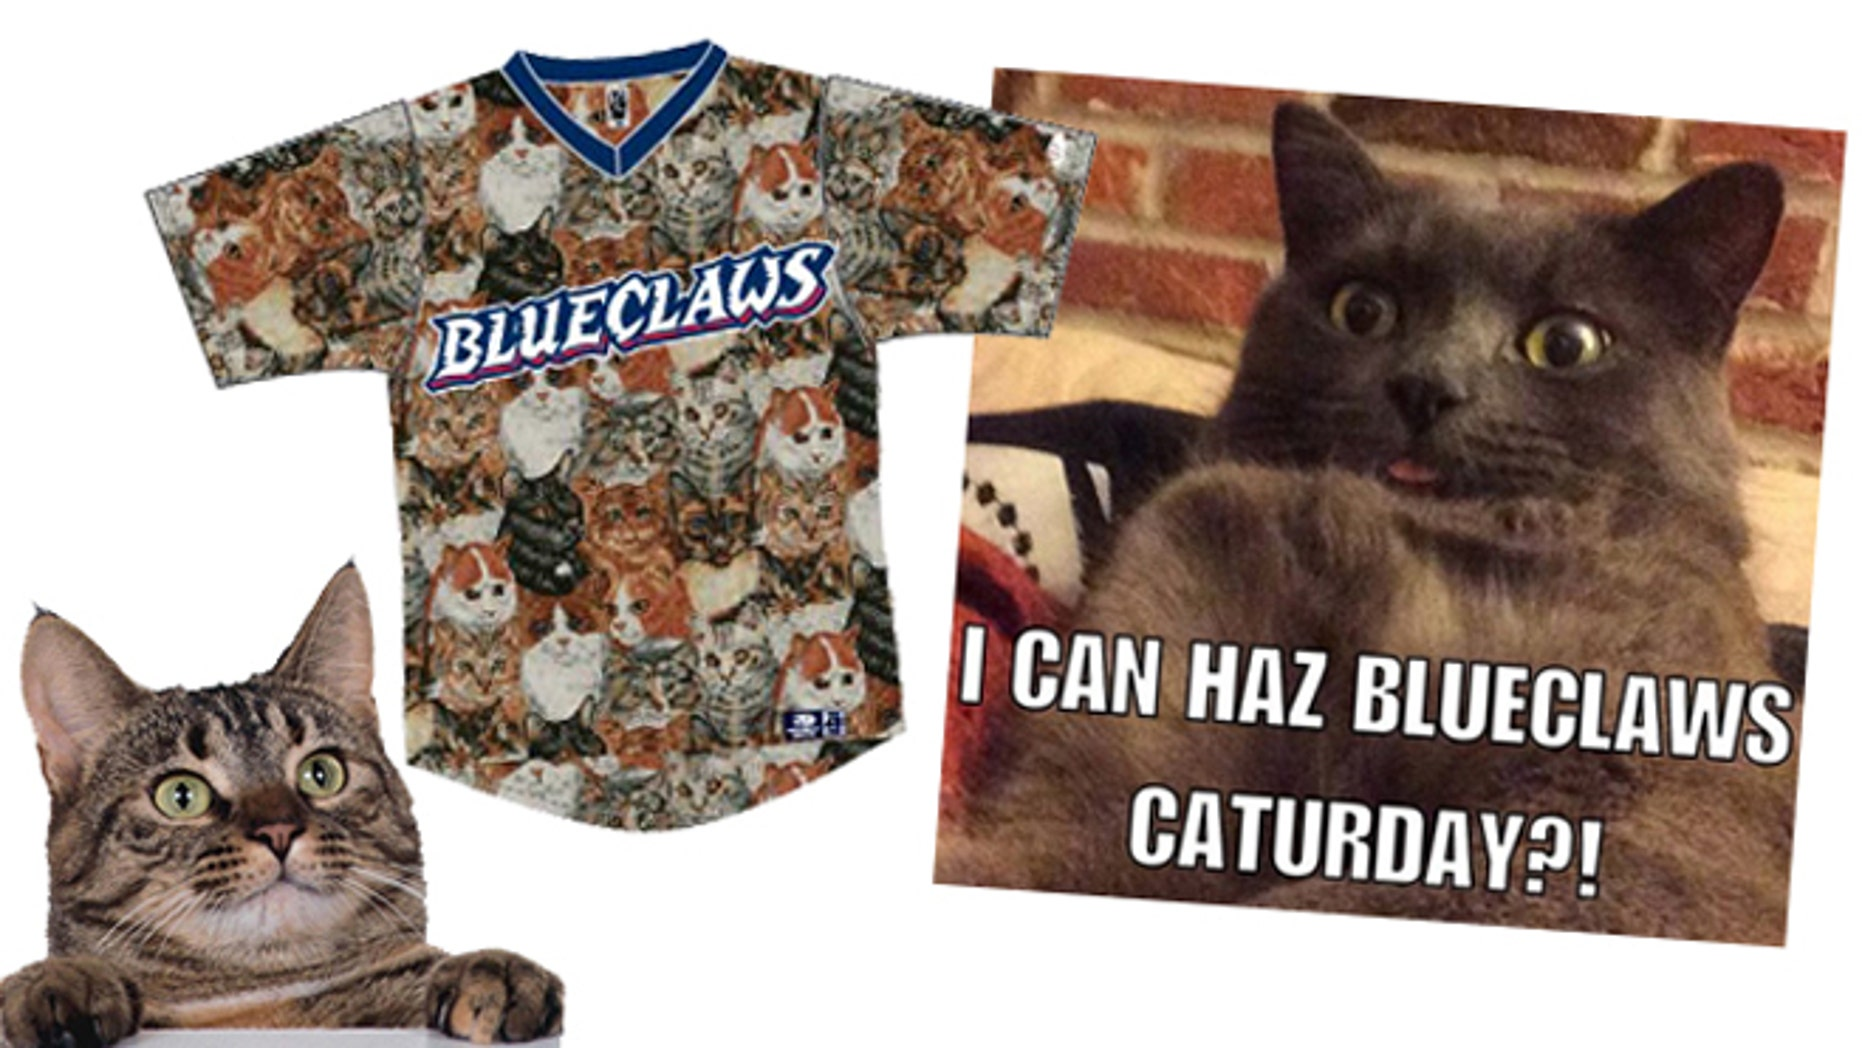 Saturday at FirstEnergy Park in Lakewood, N.J. is CATurday, expected to be a Purrfect night for cats at the ballpark. (Lakewood BlueClaws)